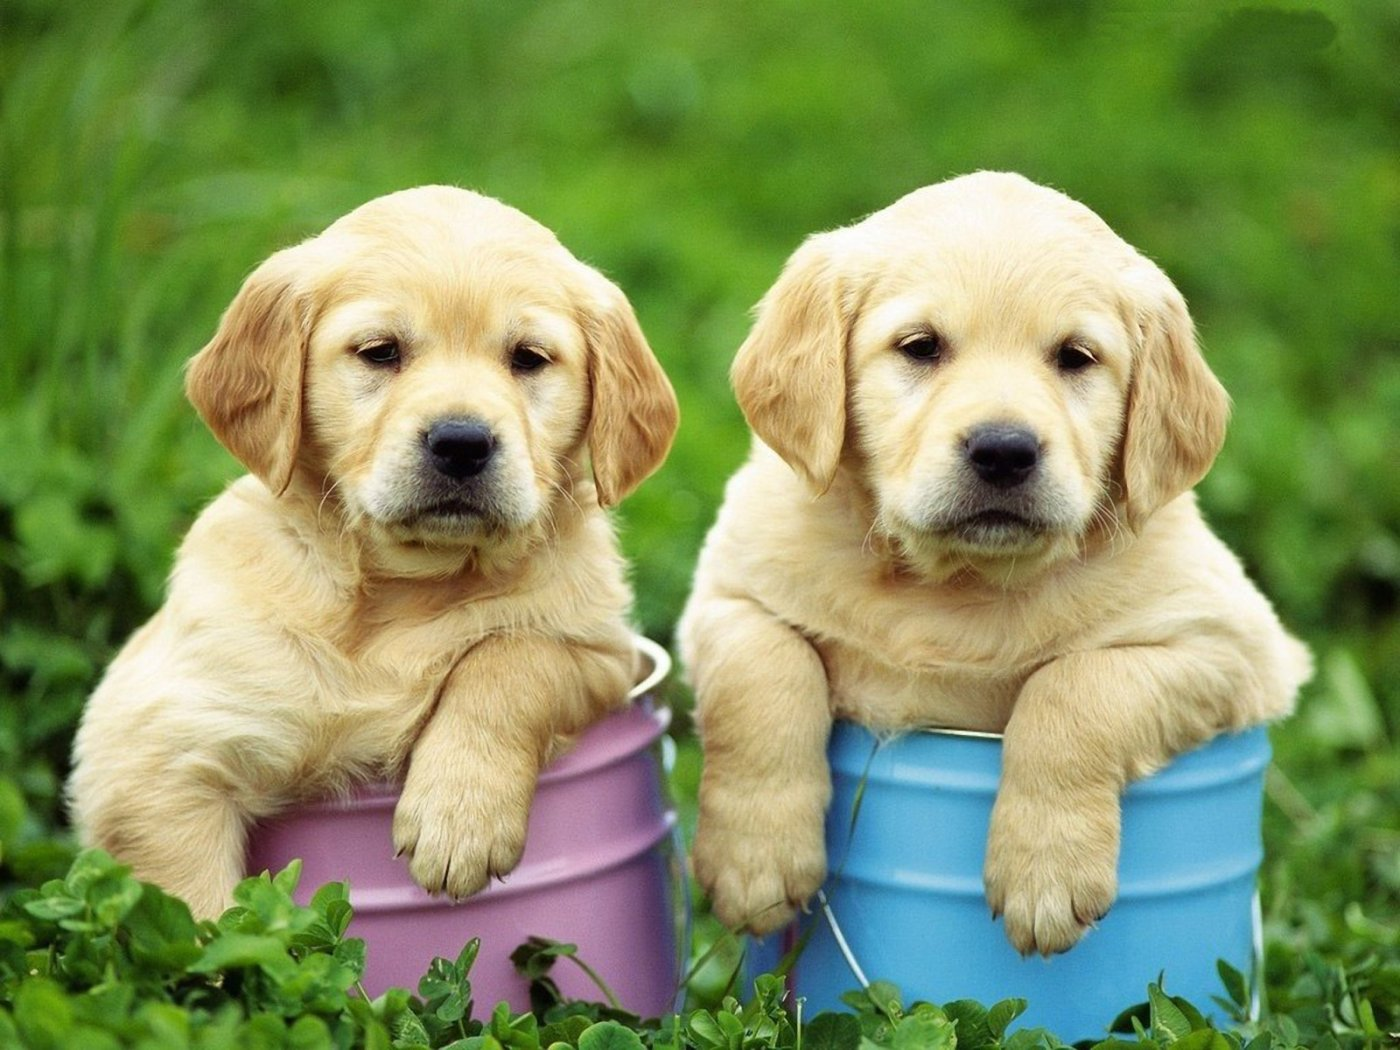 Two cute Golden Retriever puppies wallpaper